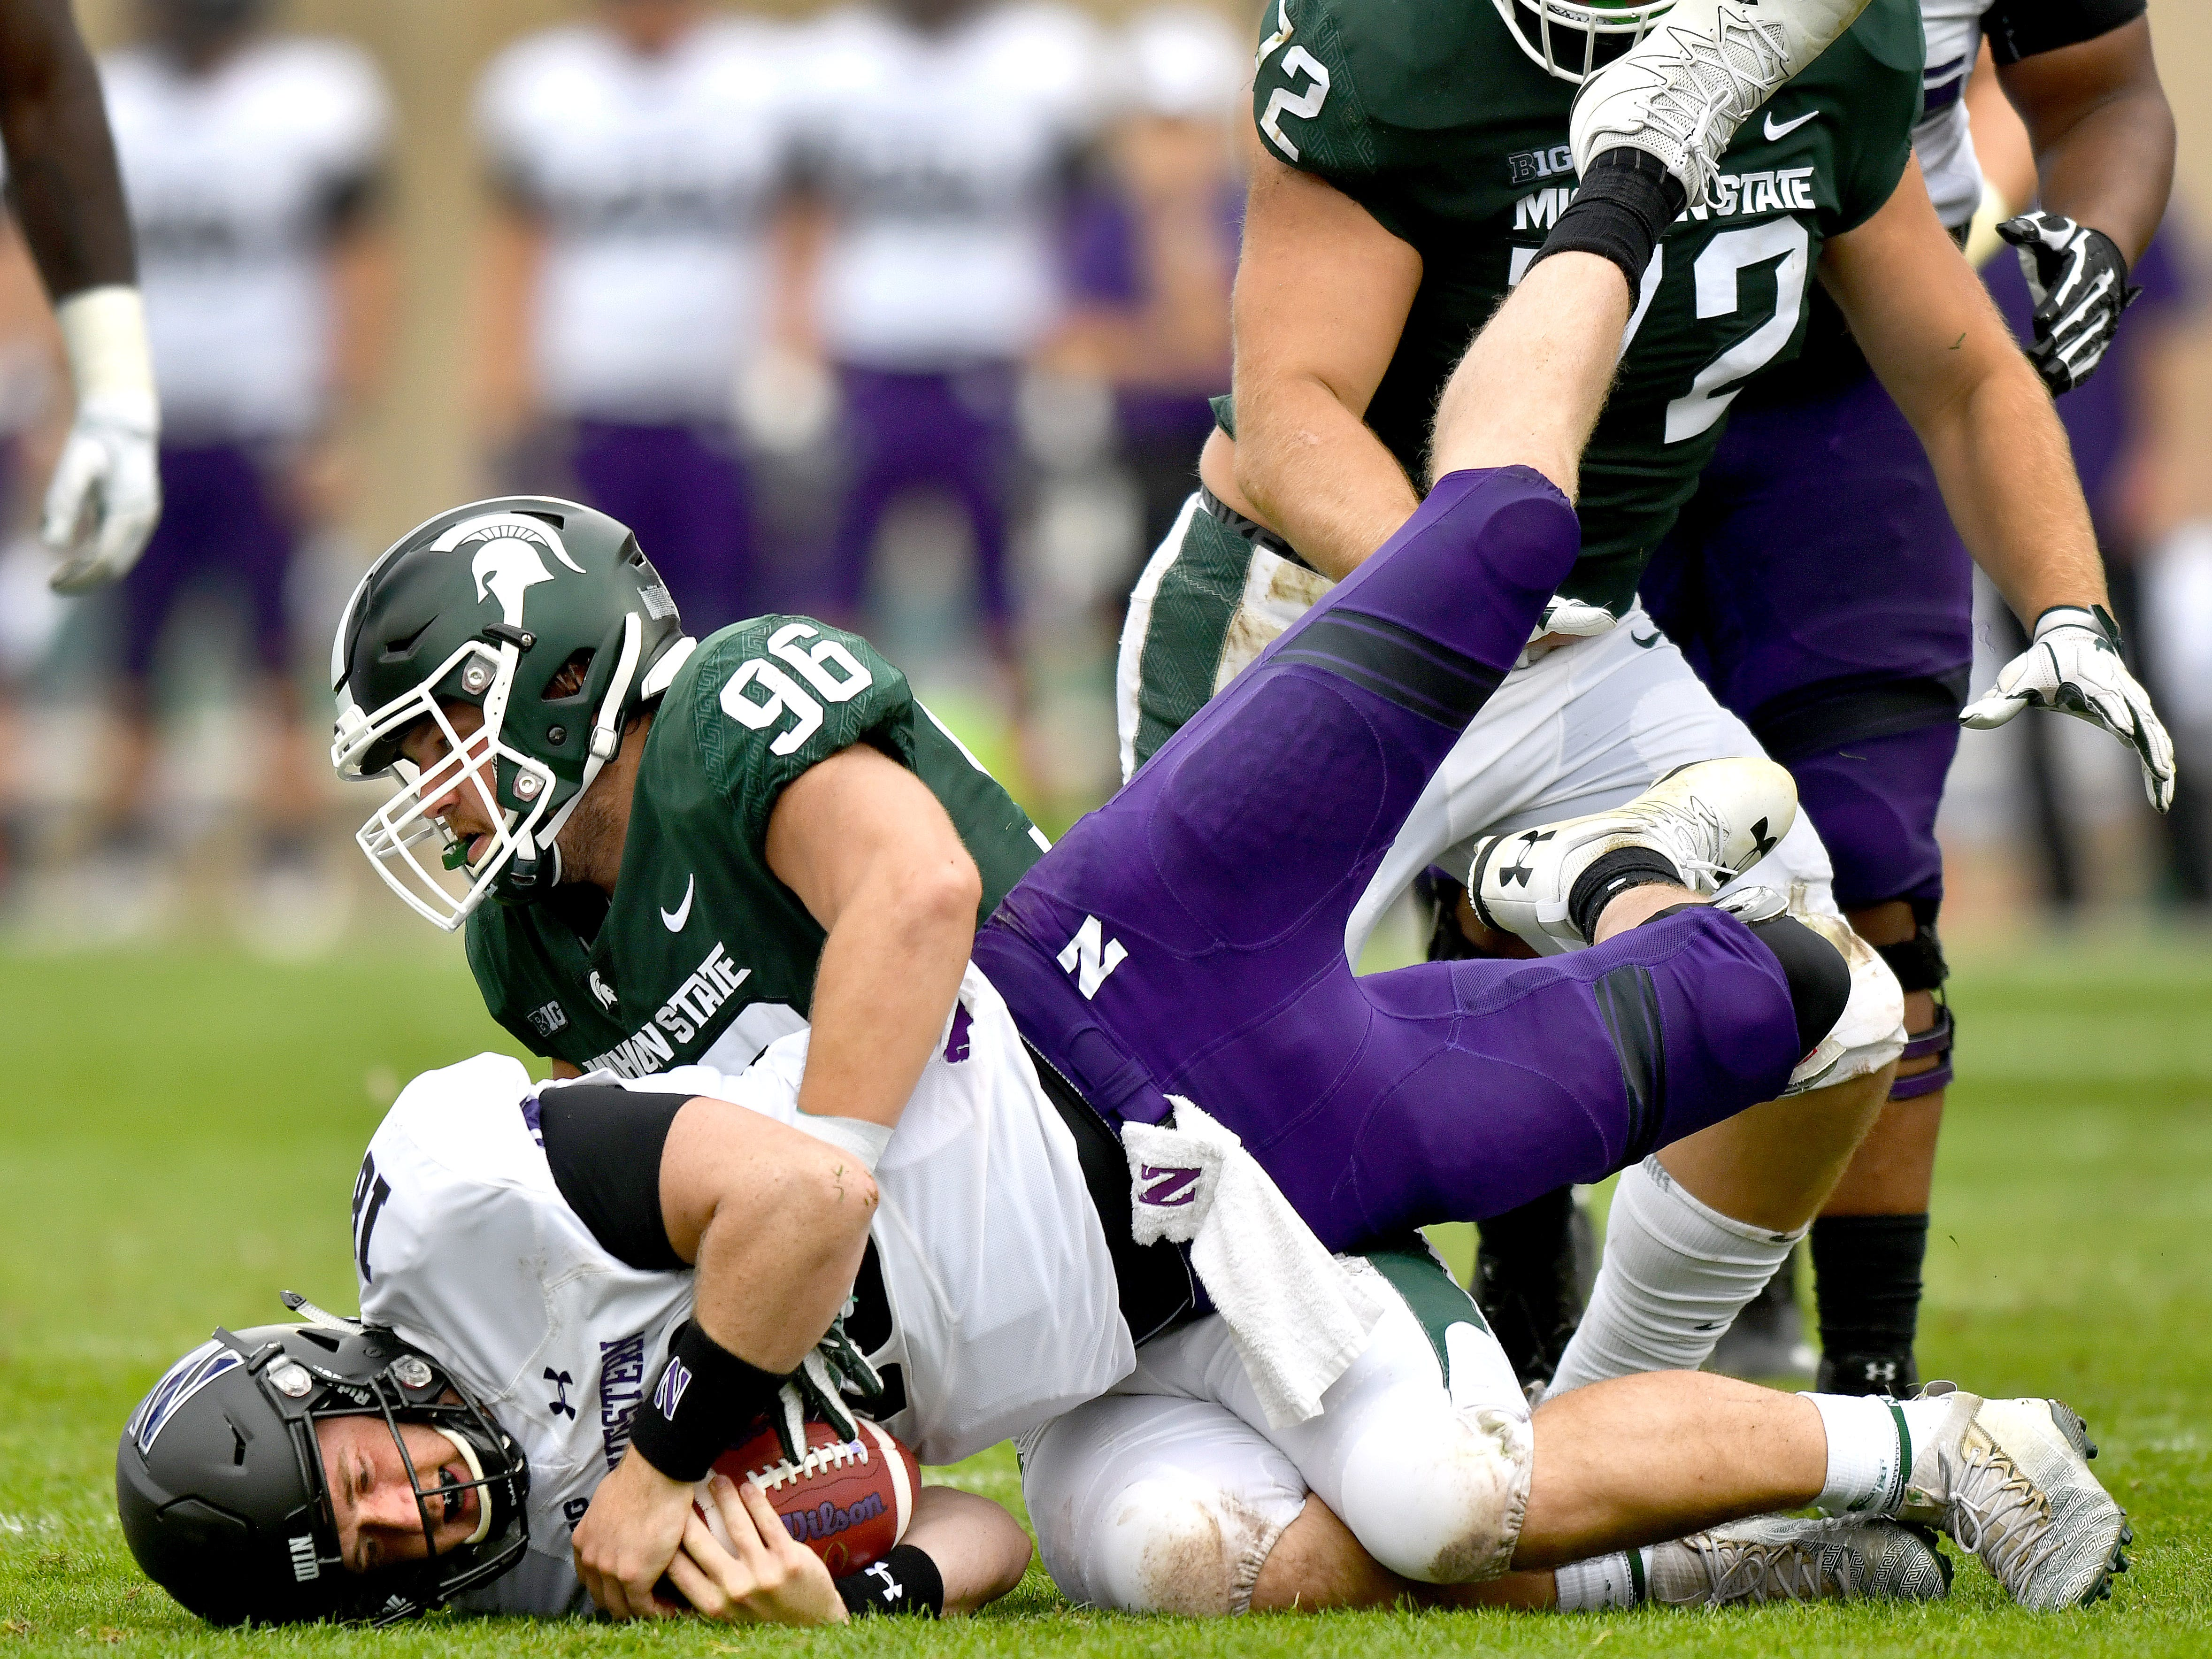 DEFENSIVE END: Jacub Panasiuk – As the Spartans have sought to increase their pass rush, Panasiuk has been the most consistent player opposite Kenny Willekes. He'll be looking to improve on his 4.5 tackles for loss and two sacks entering his junior season.